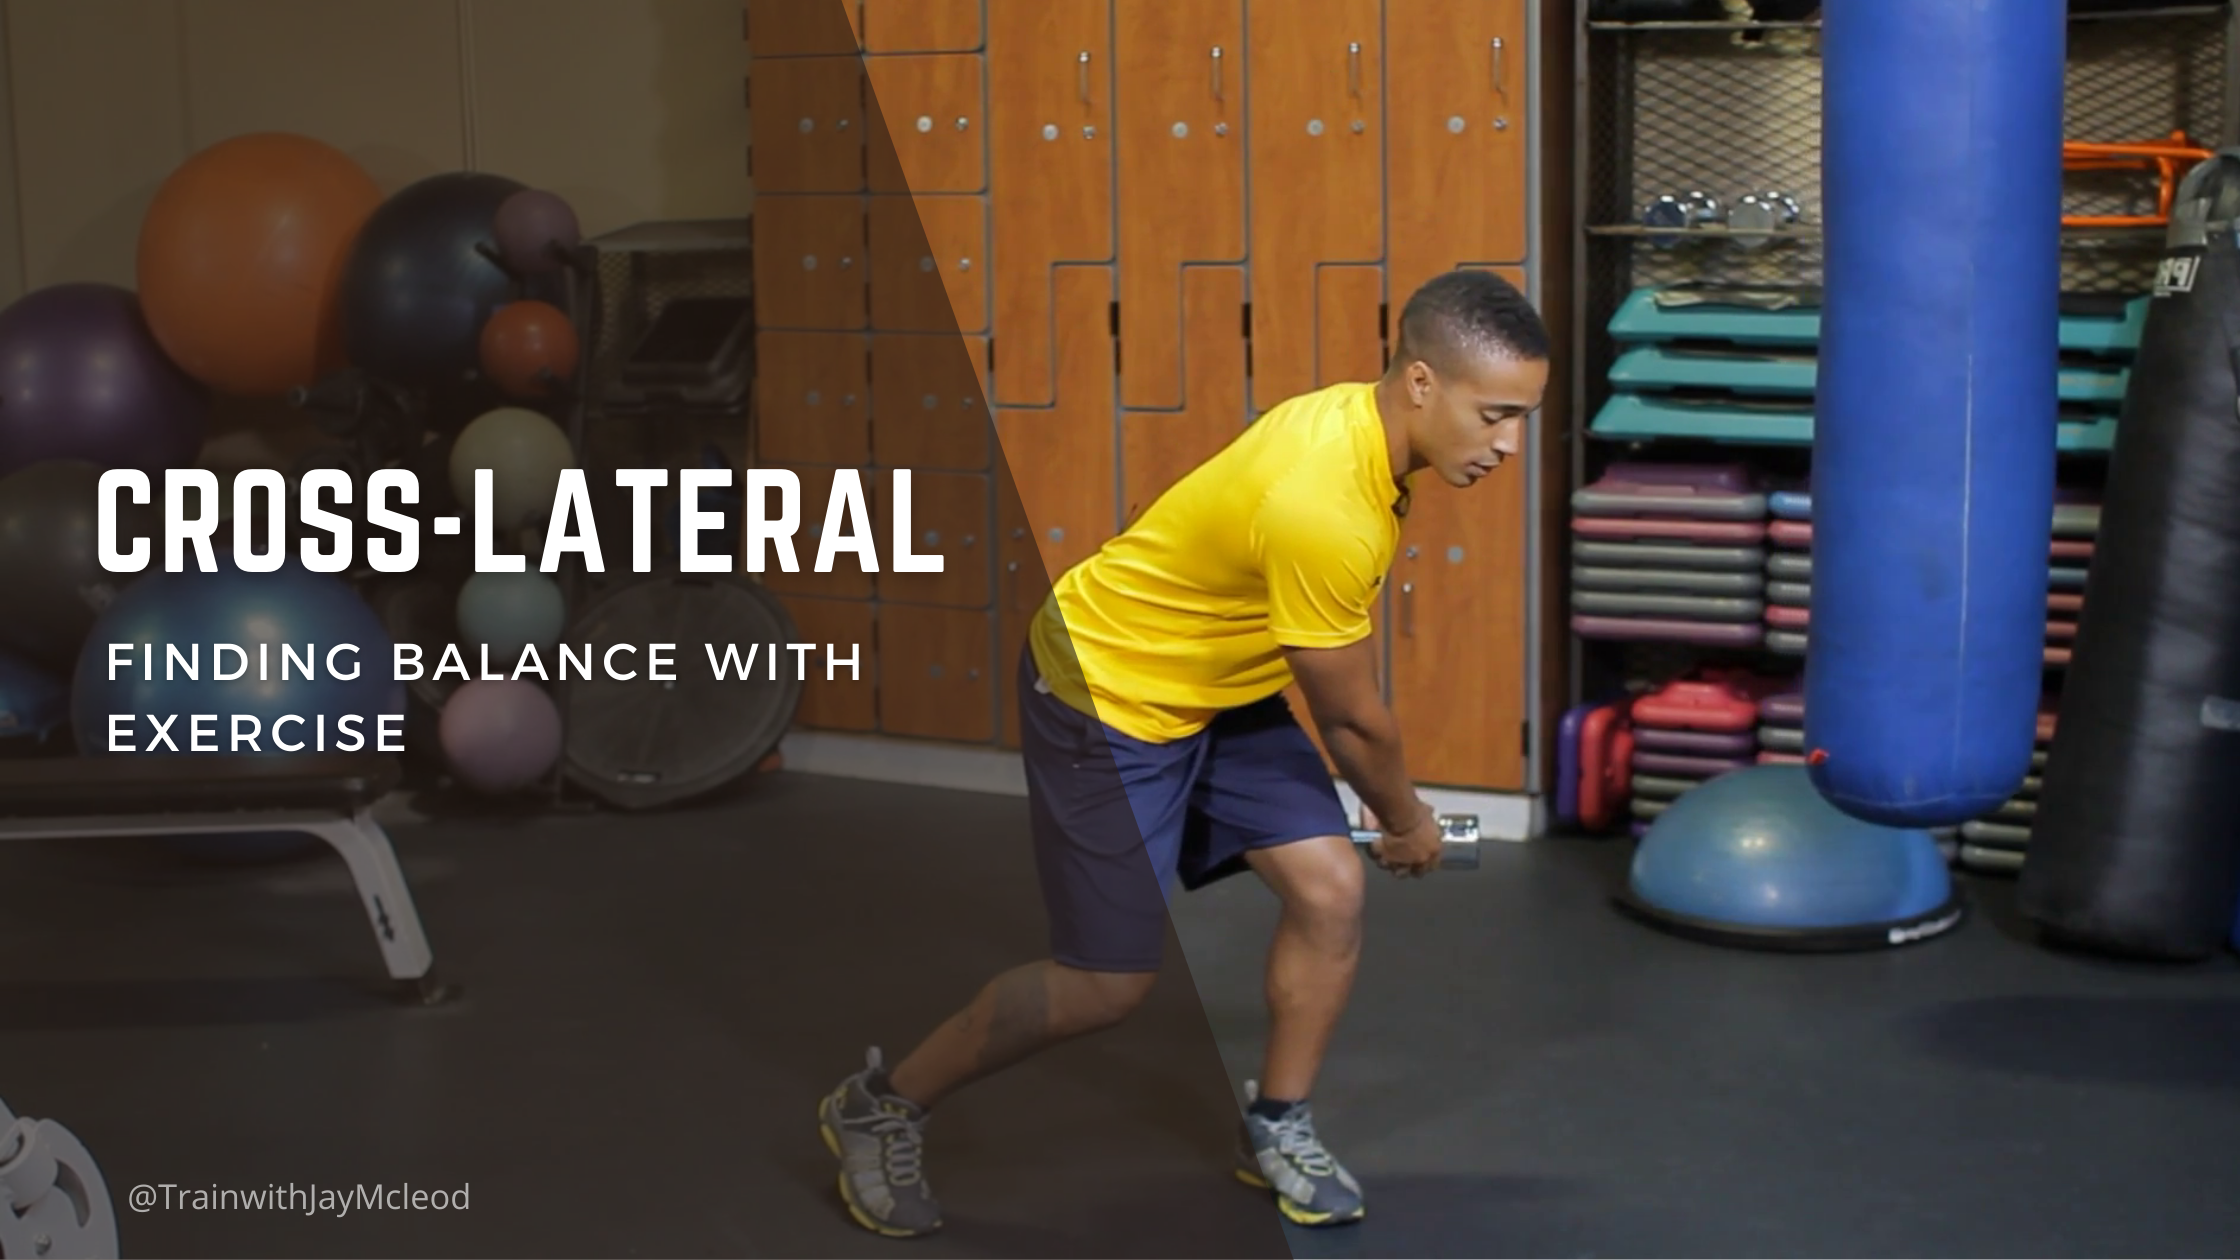 Finding Balance Cross-Lateral Exercises | Personal Training in Bel Air, CA